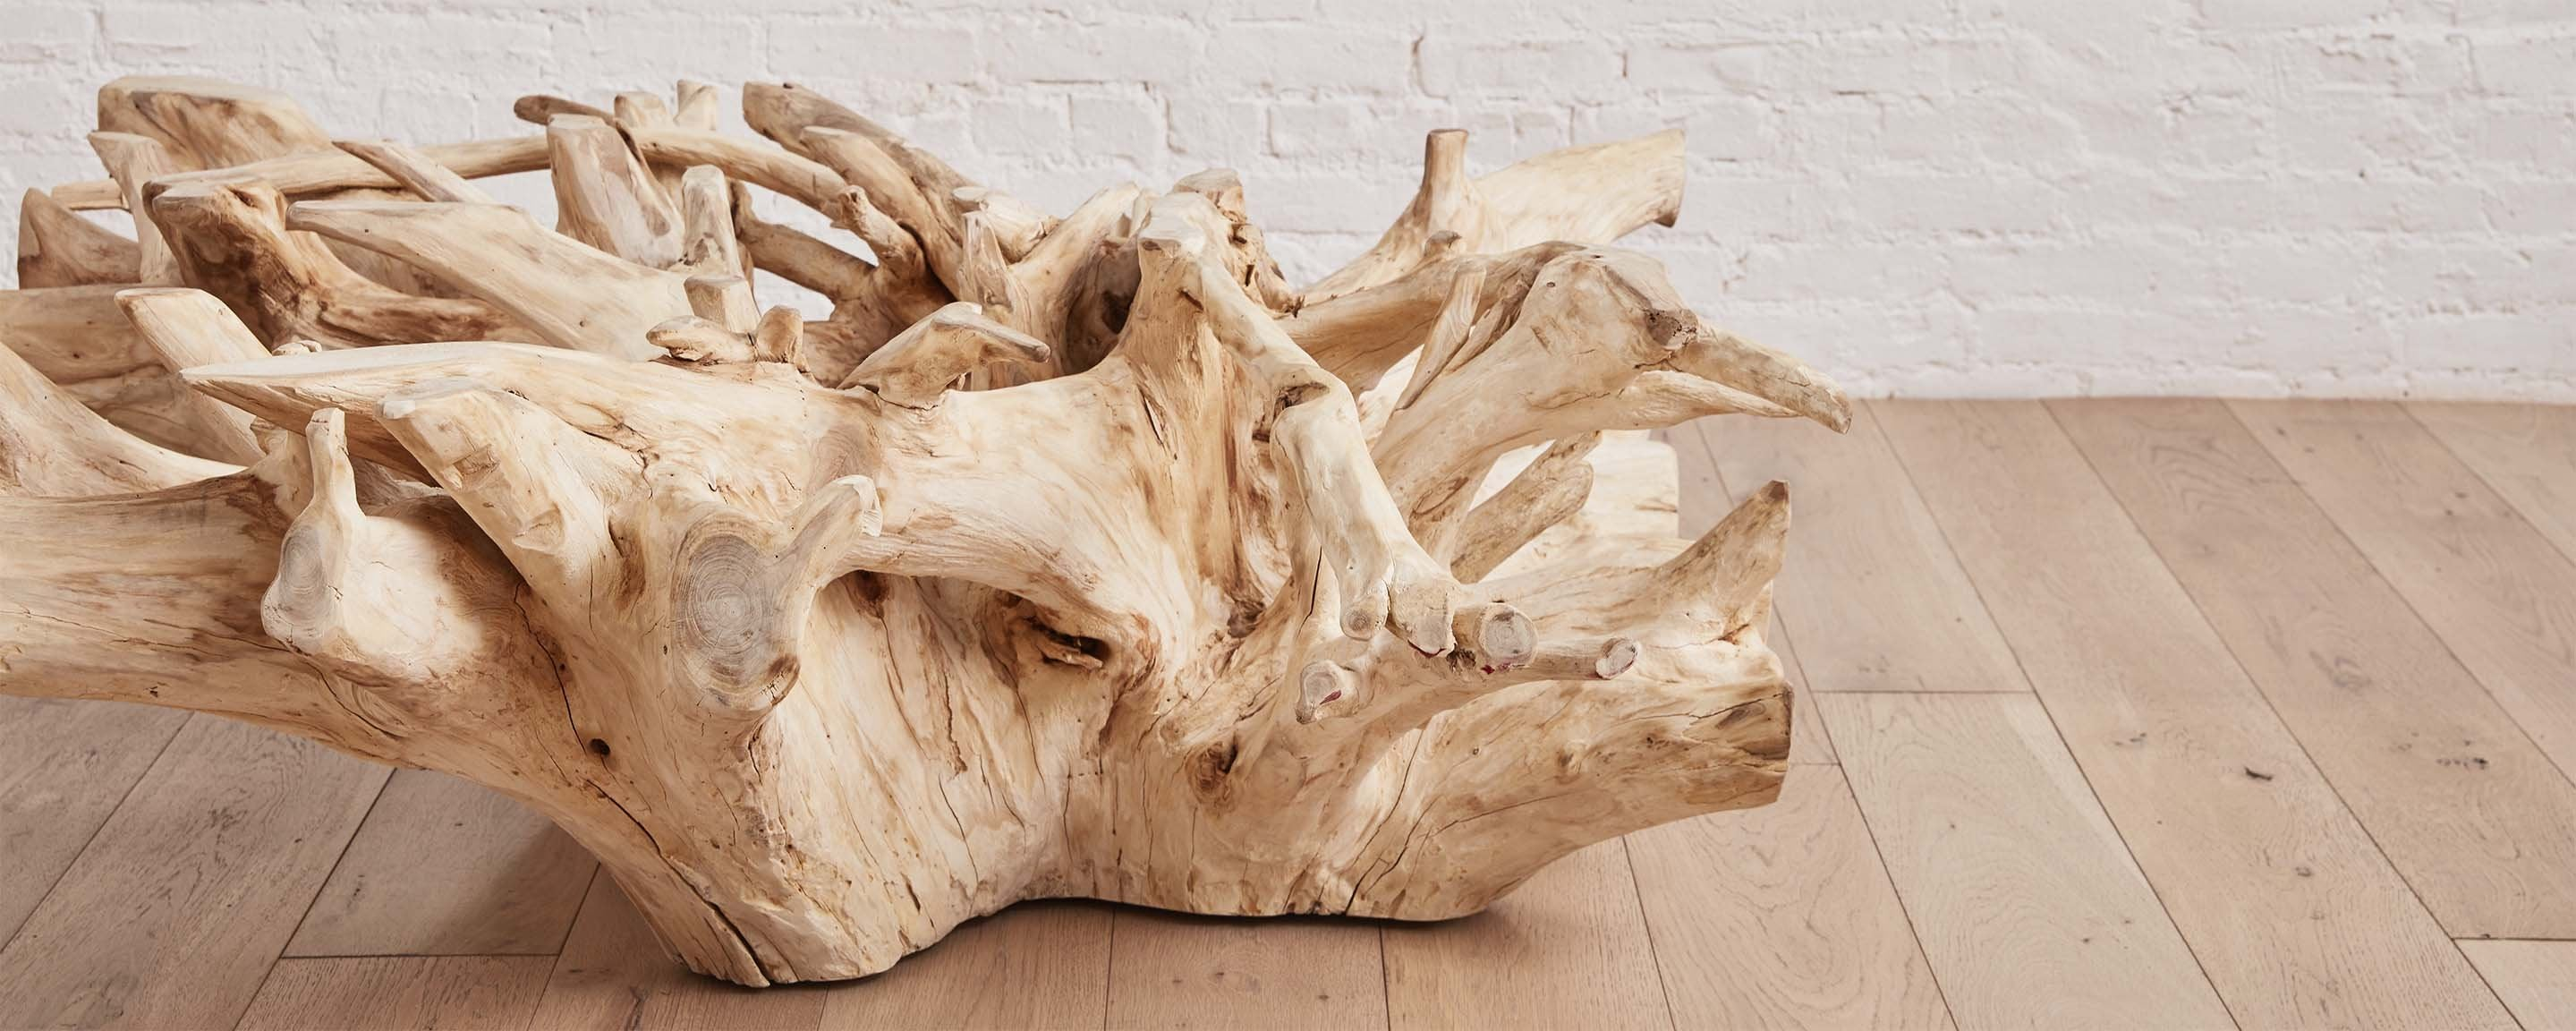 Bleached Teak Root Square Coffee Tables At Homenature Stores